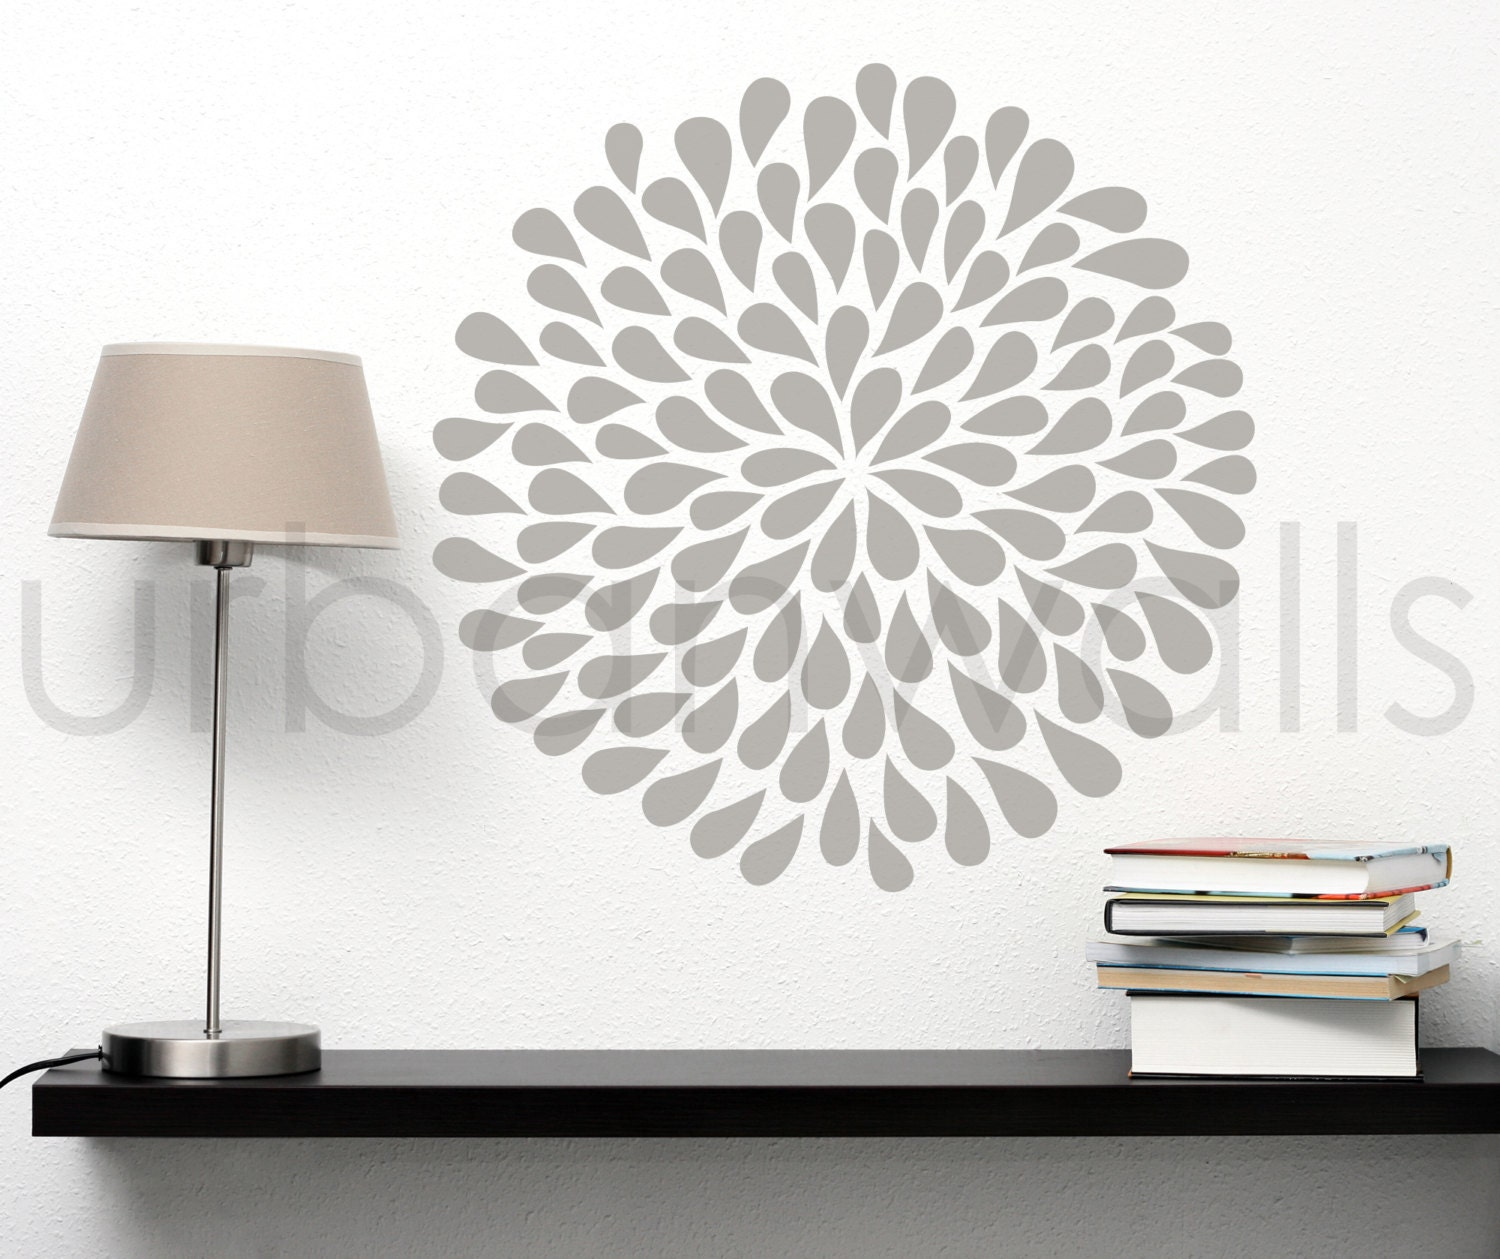 Vinyl wall sticker decal art large flower zoom amipublicfo Gallery